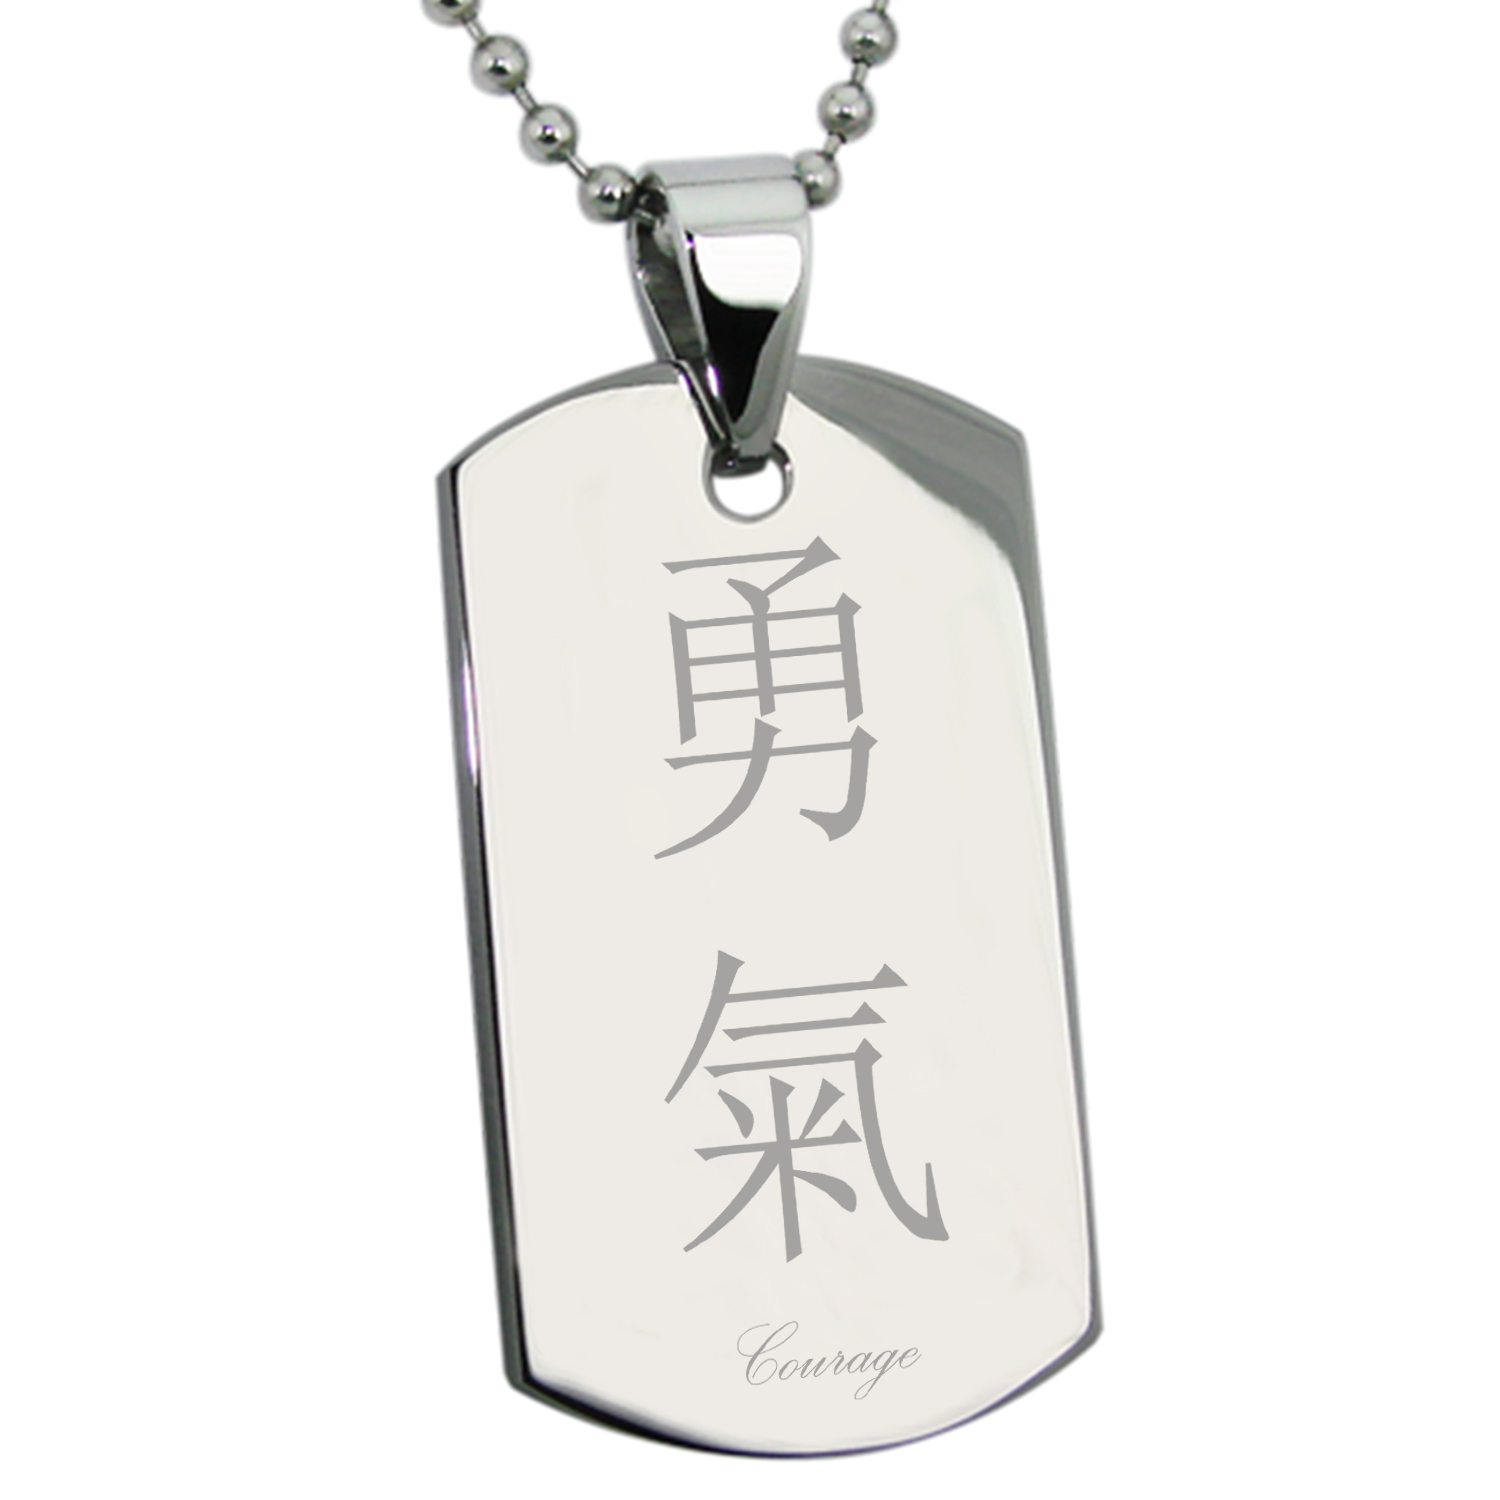 Stainless Steel Courage Chinese Traditional Calligraphy Engraved Dog Tag Pendant